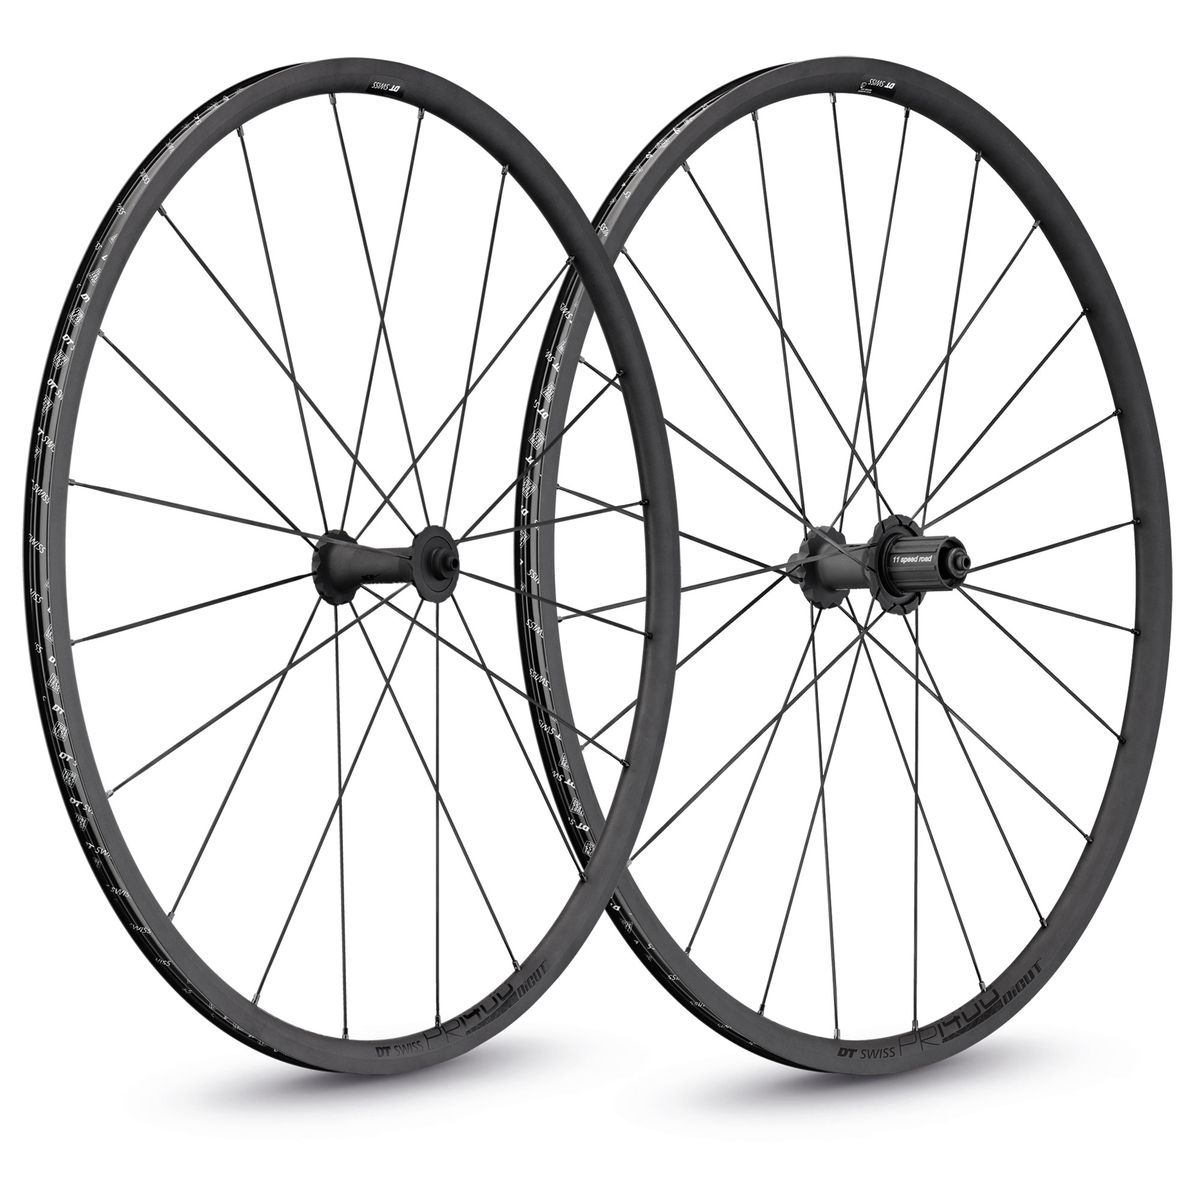 PR1400 DICUT 21 OXiC road wheels